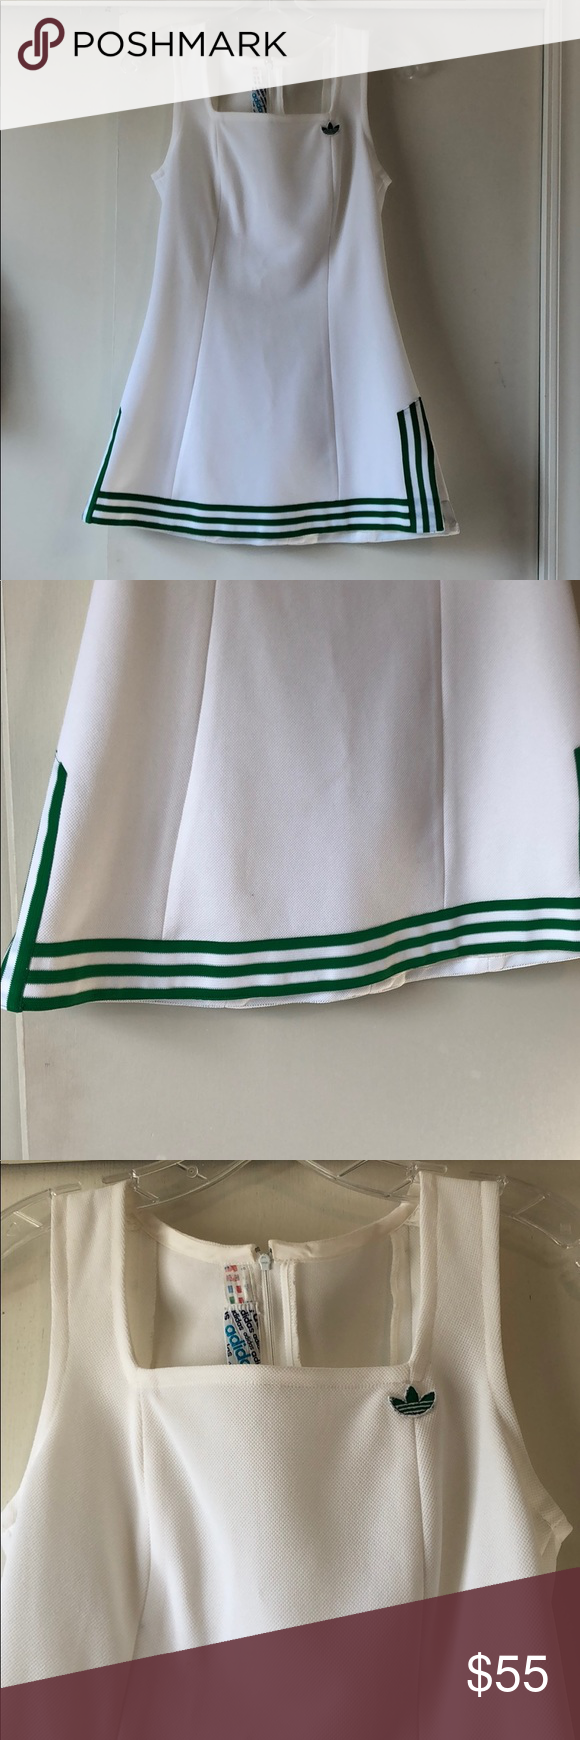 Vintage Adidas Tennis Dress Adorable Vintage Adidas Tennis Dress With Green Accent Color Dress Is Vintage And Was Purchased For A Pa Tennis Dress Vintage Adidas Adidas Dress